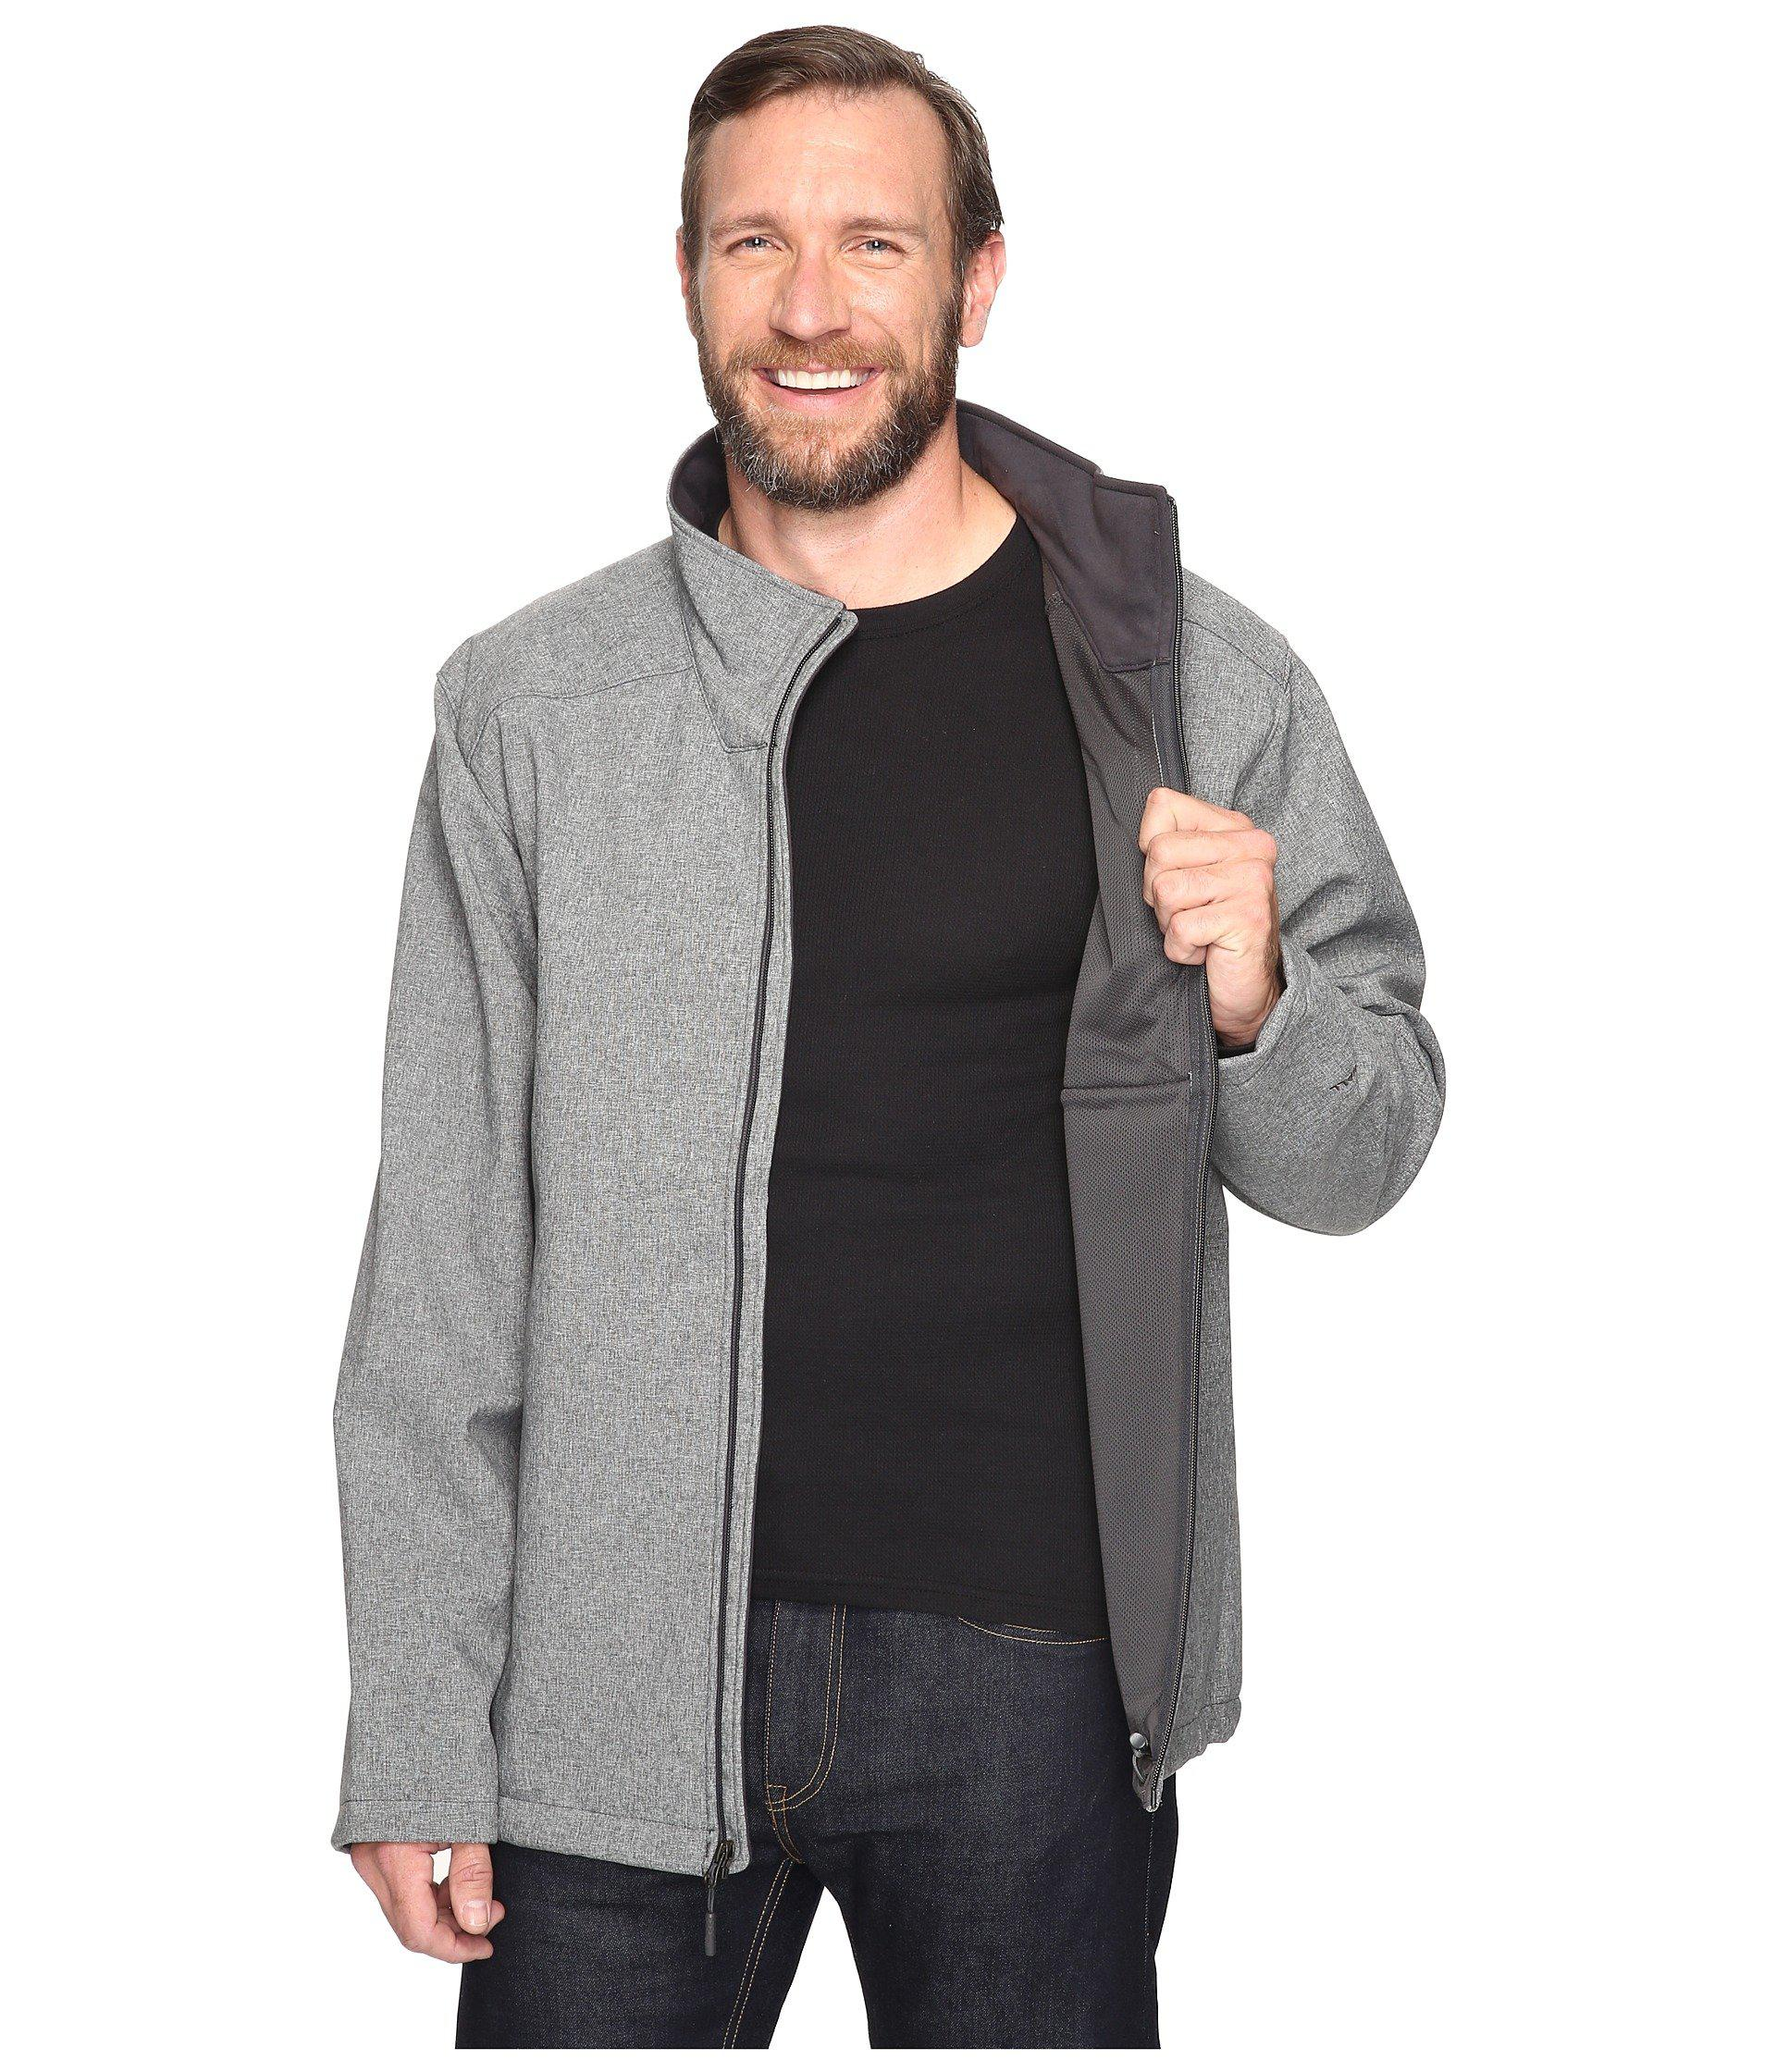 6bb48744598 ... hot lyst the north face apex bionic 2 jacket 3xl in gray for men 0912f  ee50f